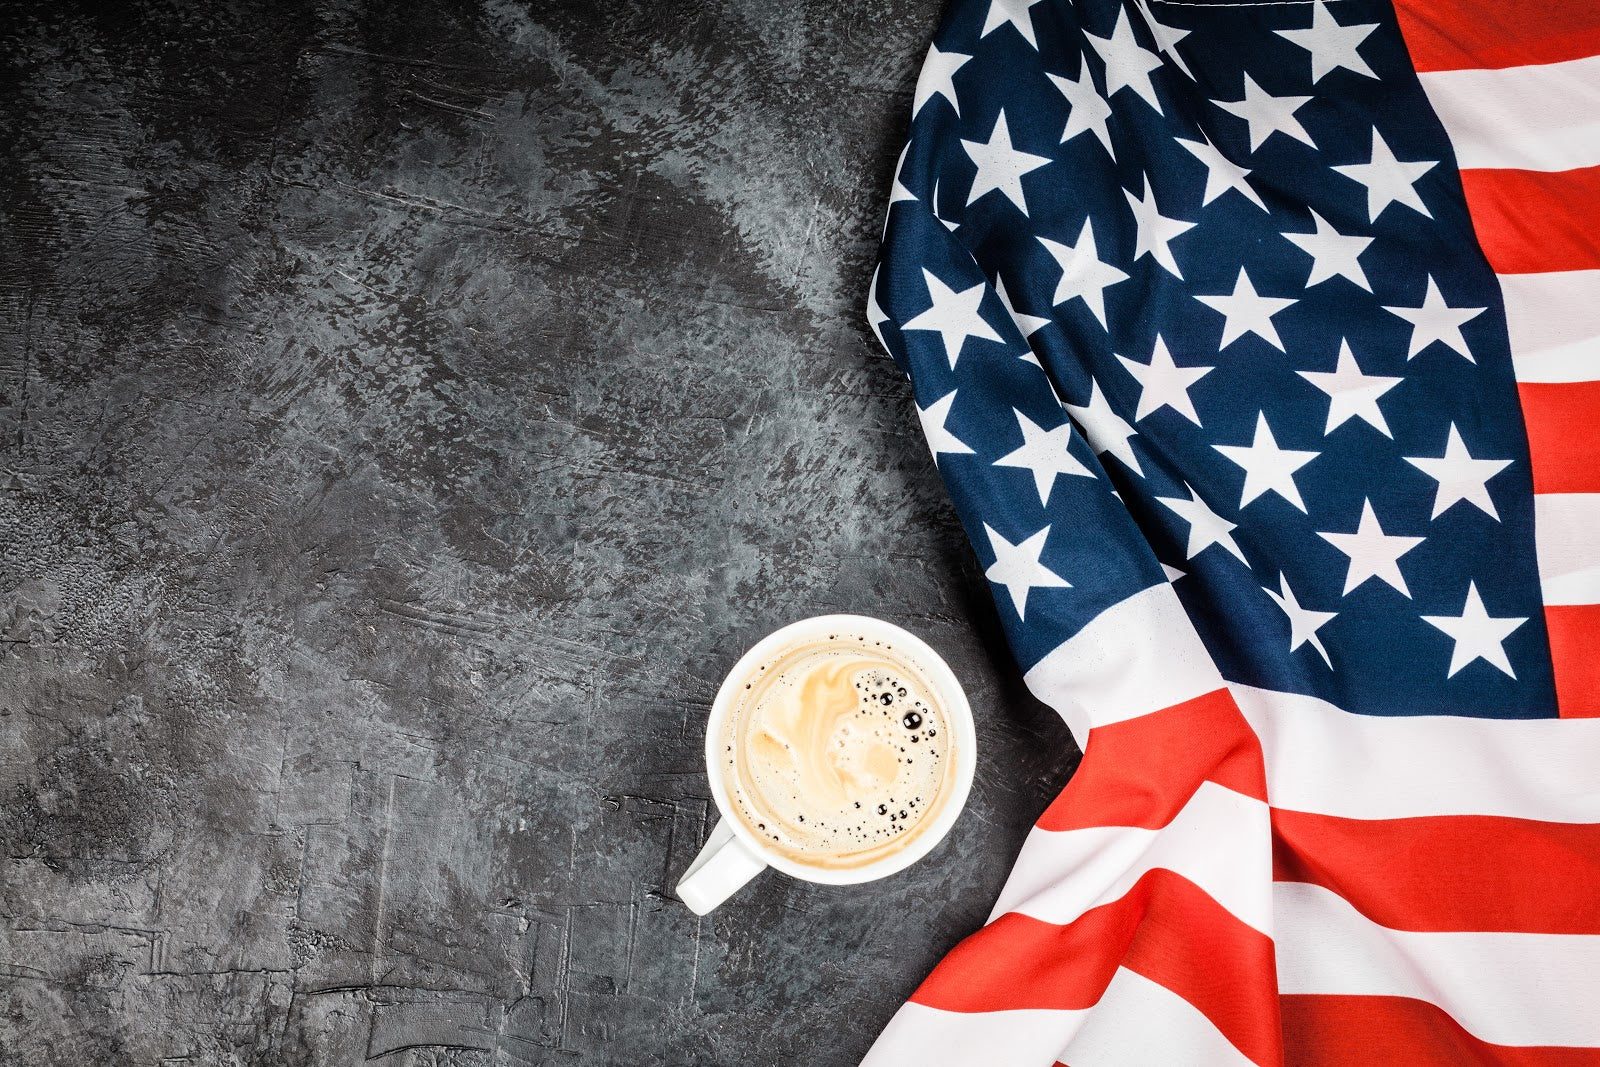 history of coffee america flag and coffee mug